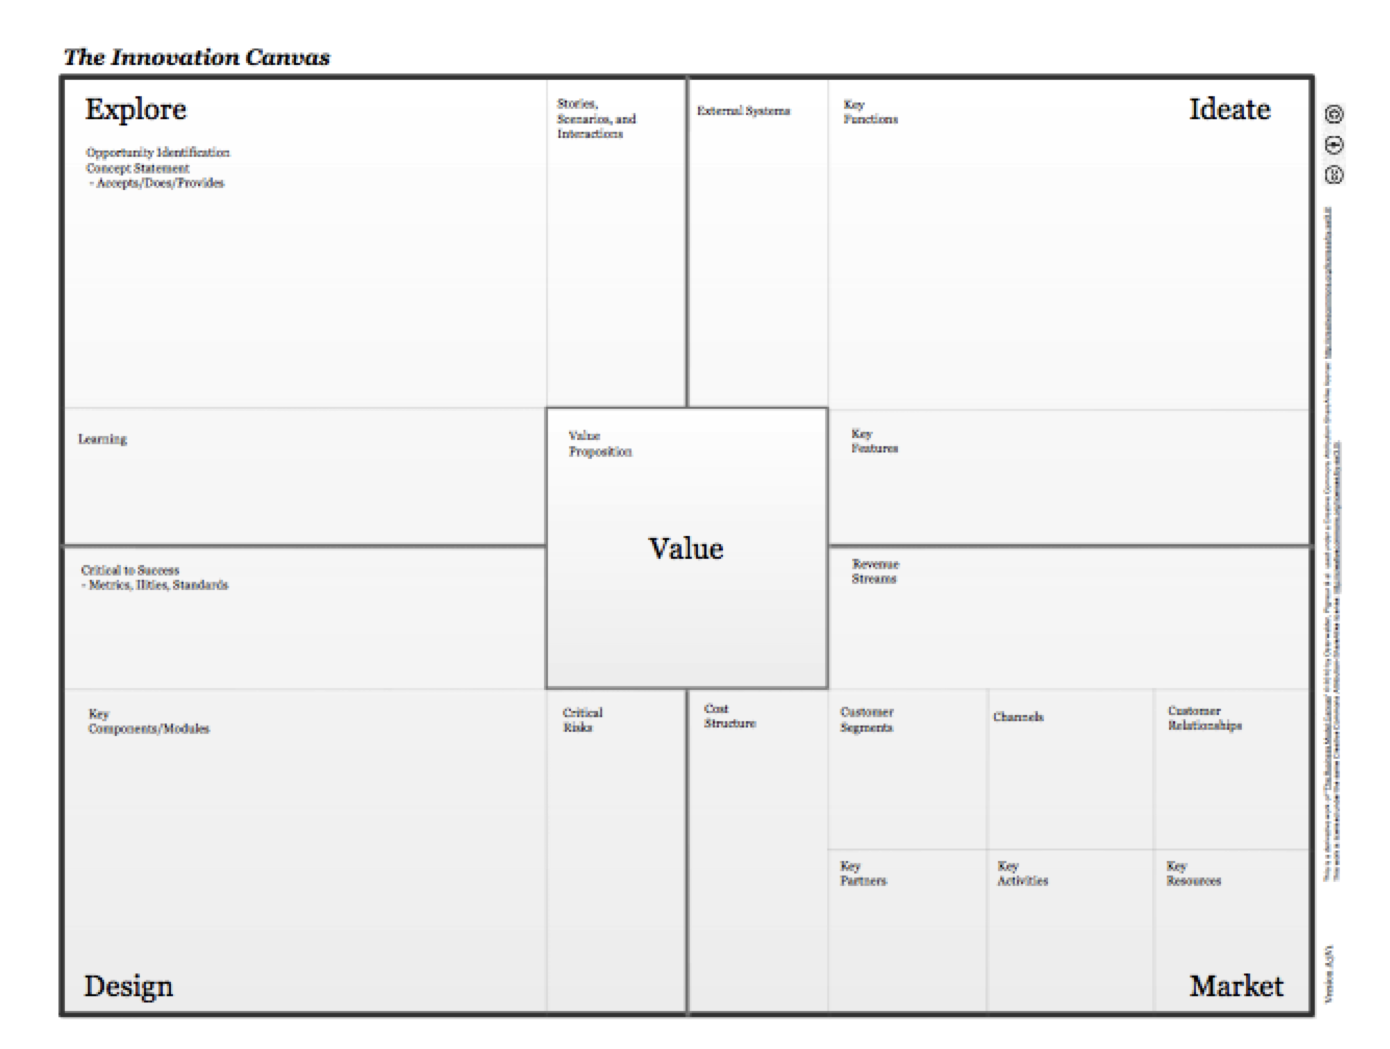 Get Creative With This Innovation Canvas